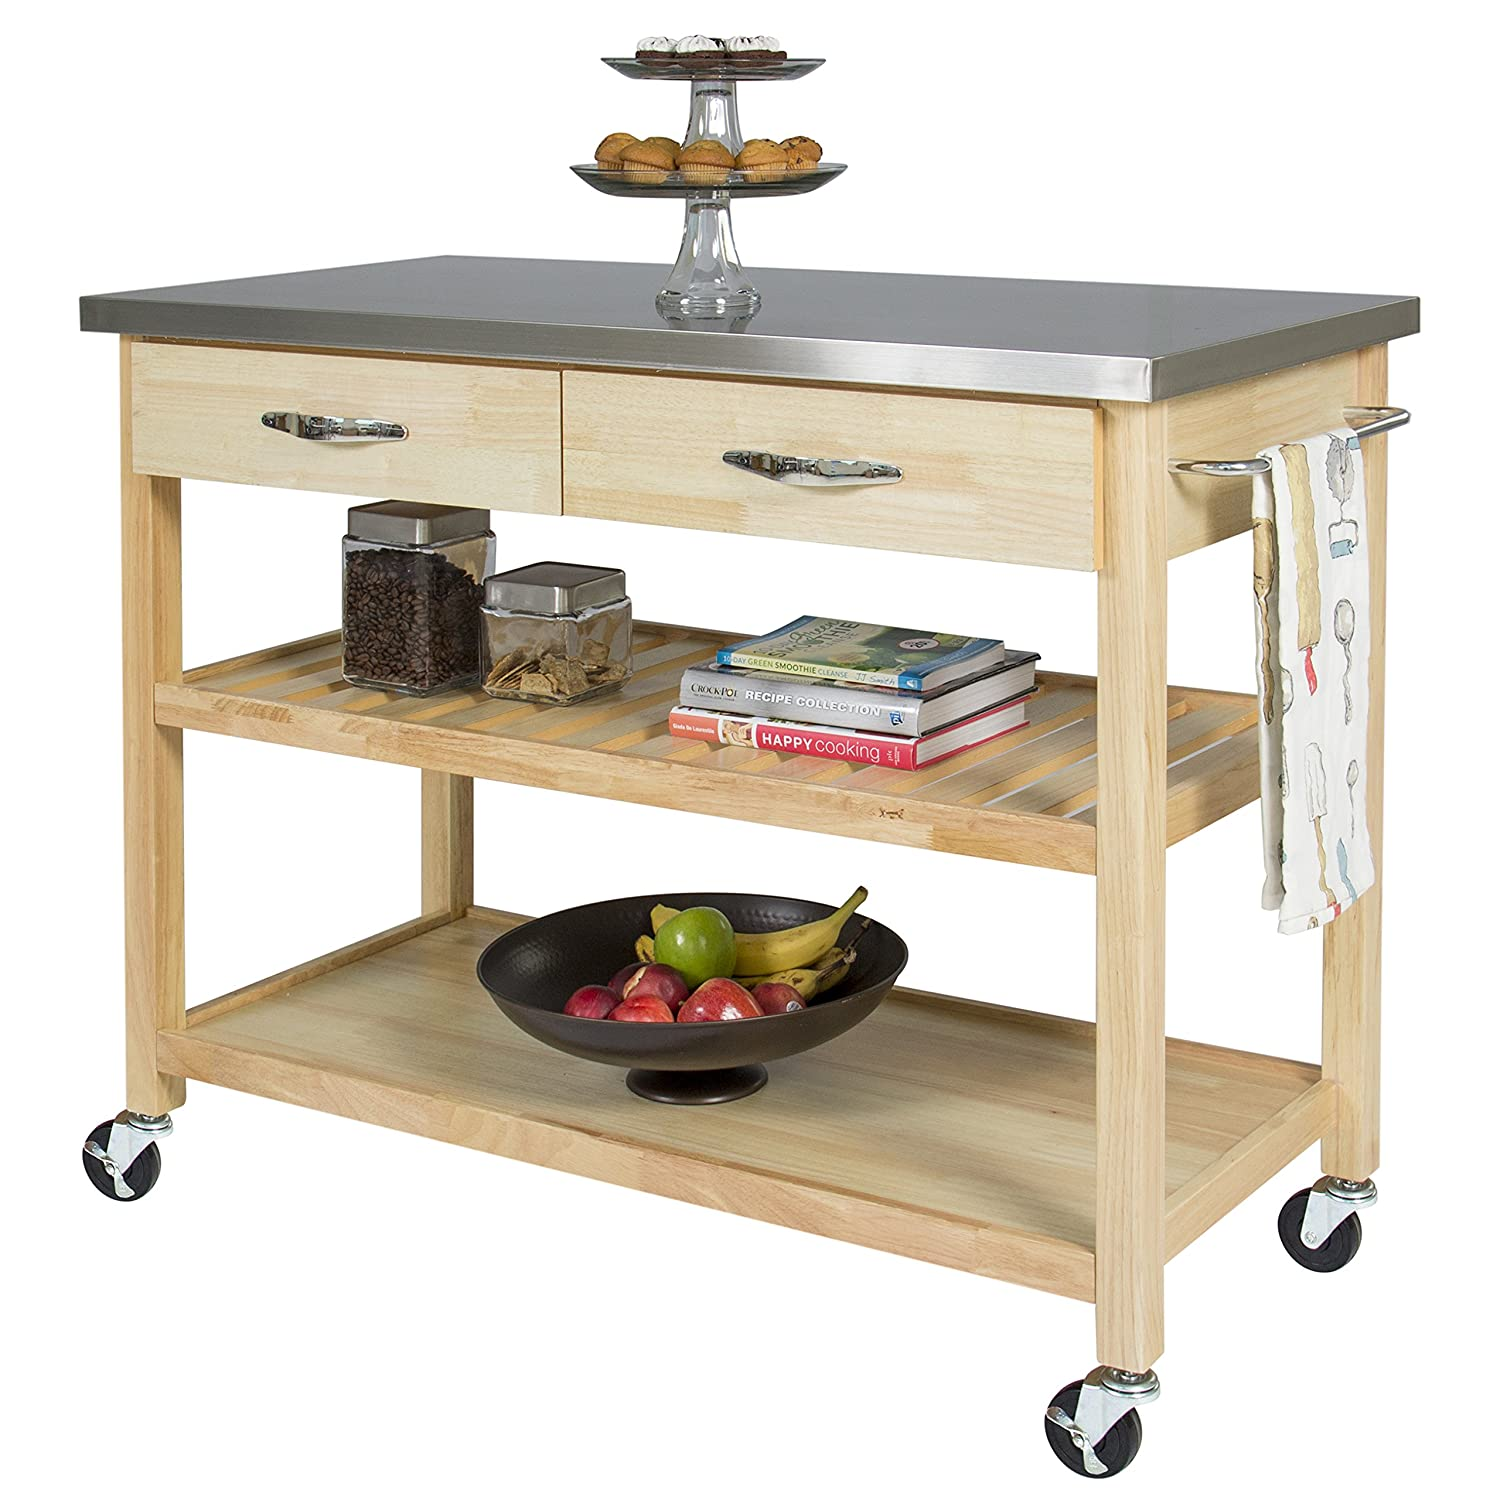 amazoncom best choice products natural wood mobile kitchen island utility cart with stainless steel top restaurant kitchen islands carts. Interior Design Ideas. Home Design Ideas